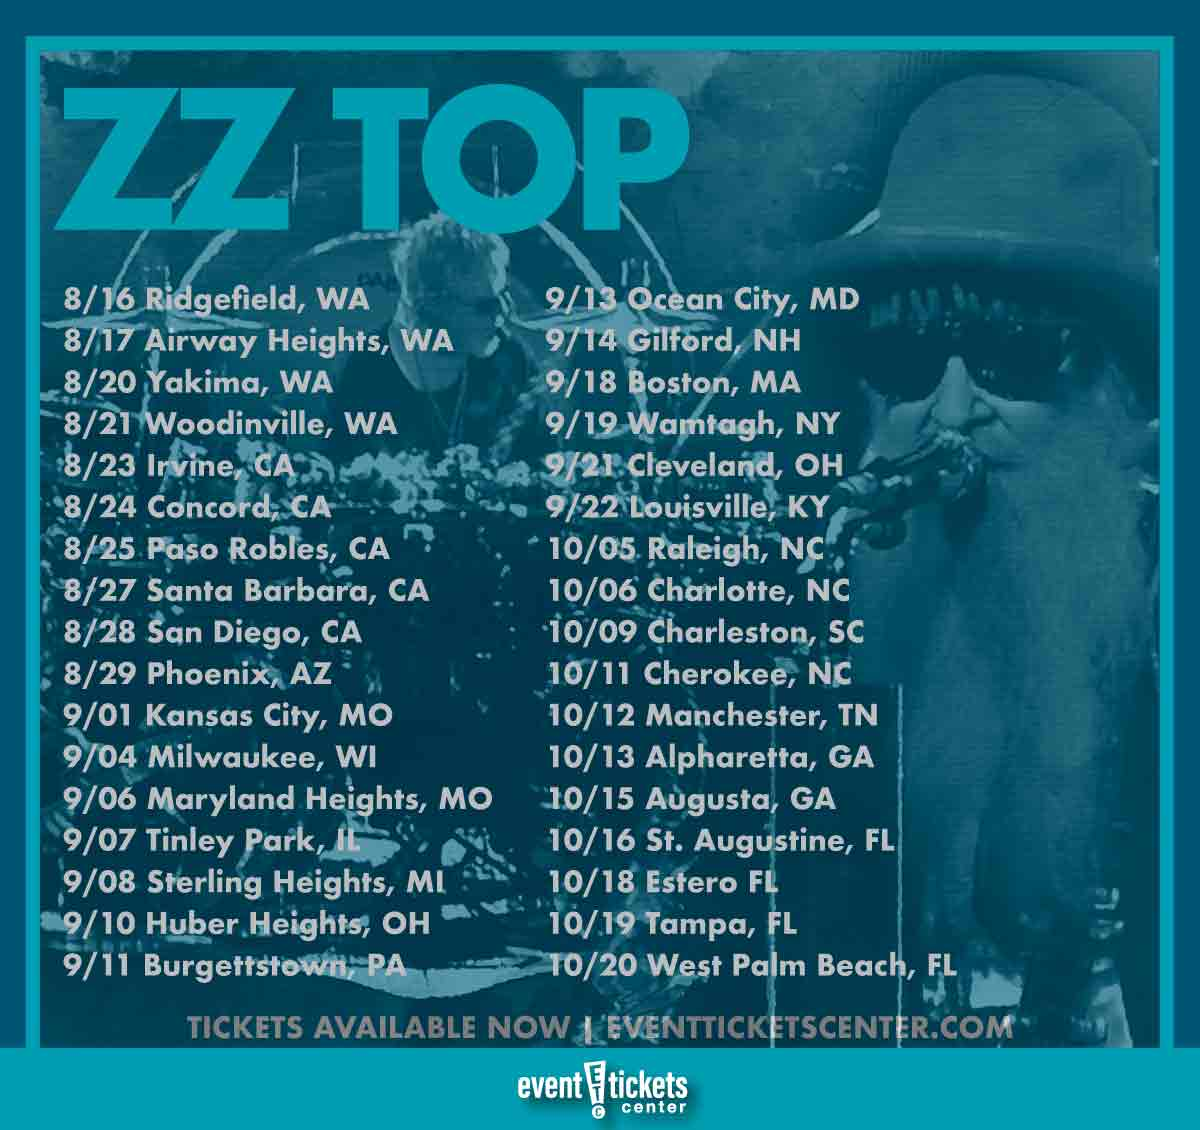 zz top tour dates